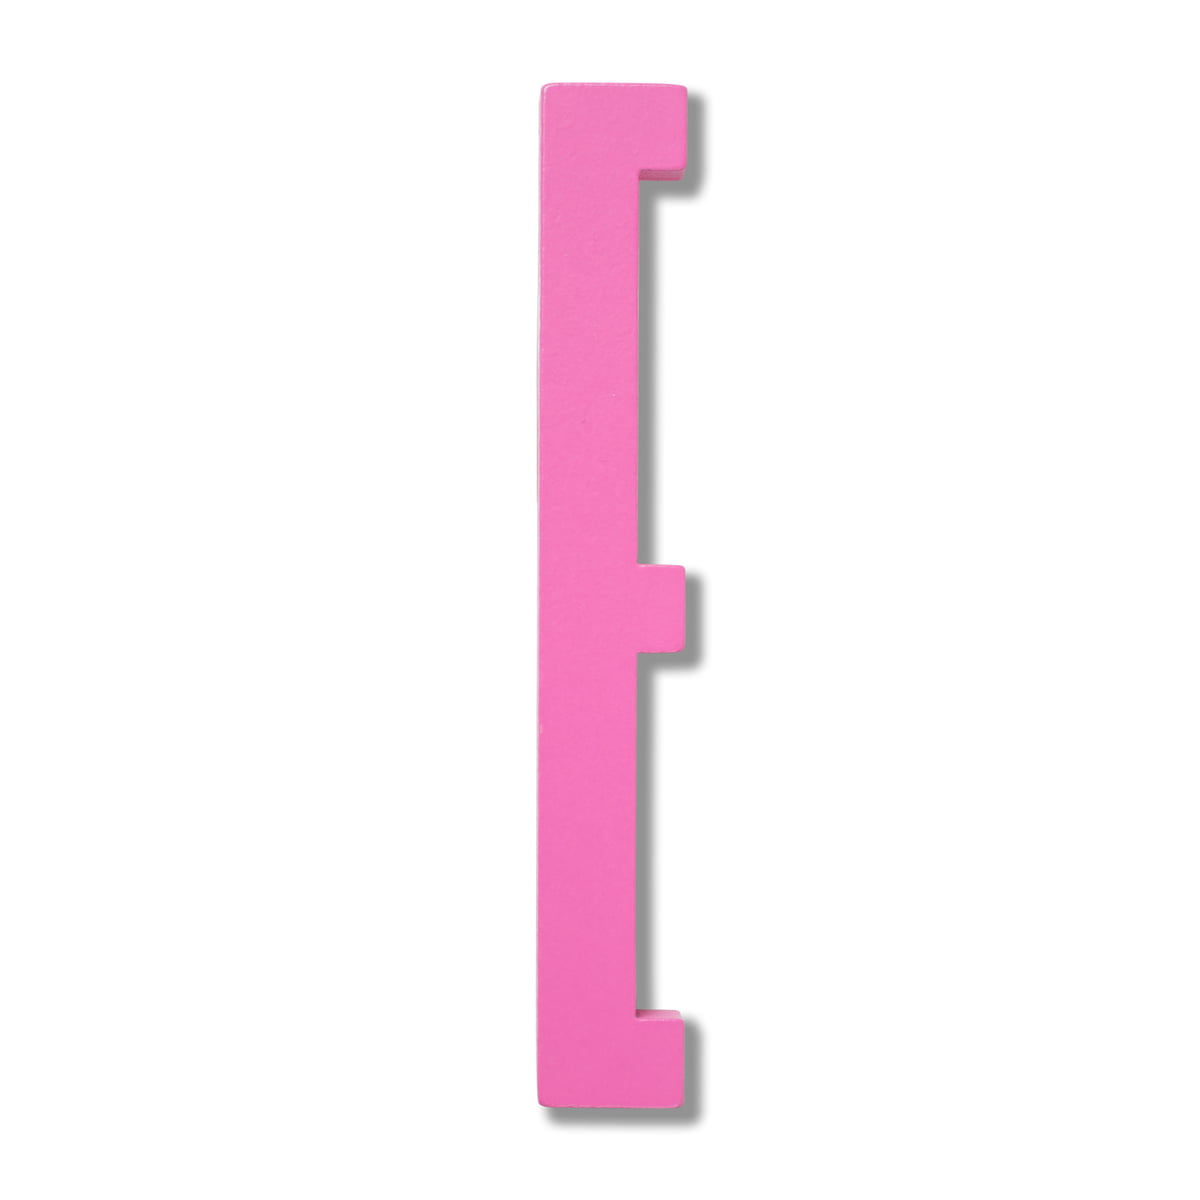 Fesselnd Wooden Letters Indoor E Von Design Letters In Pink